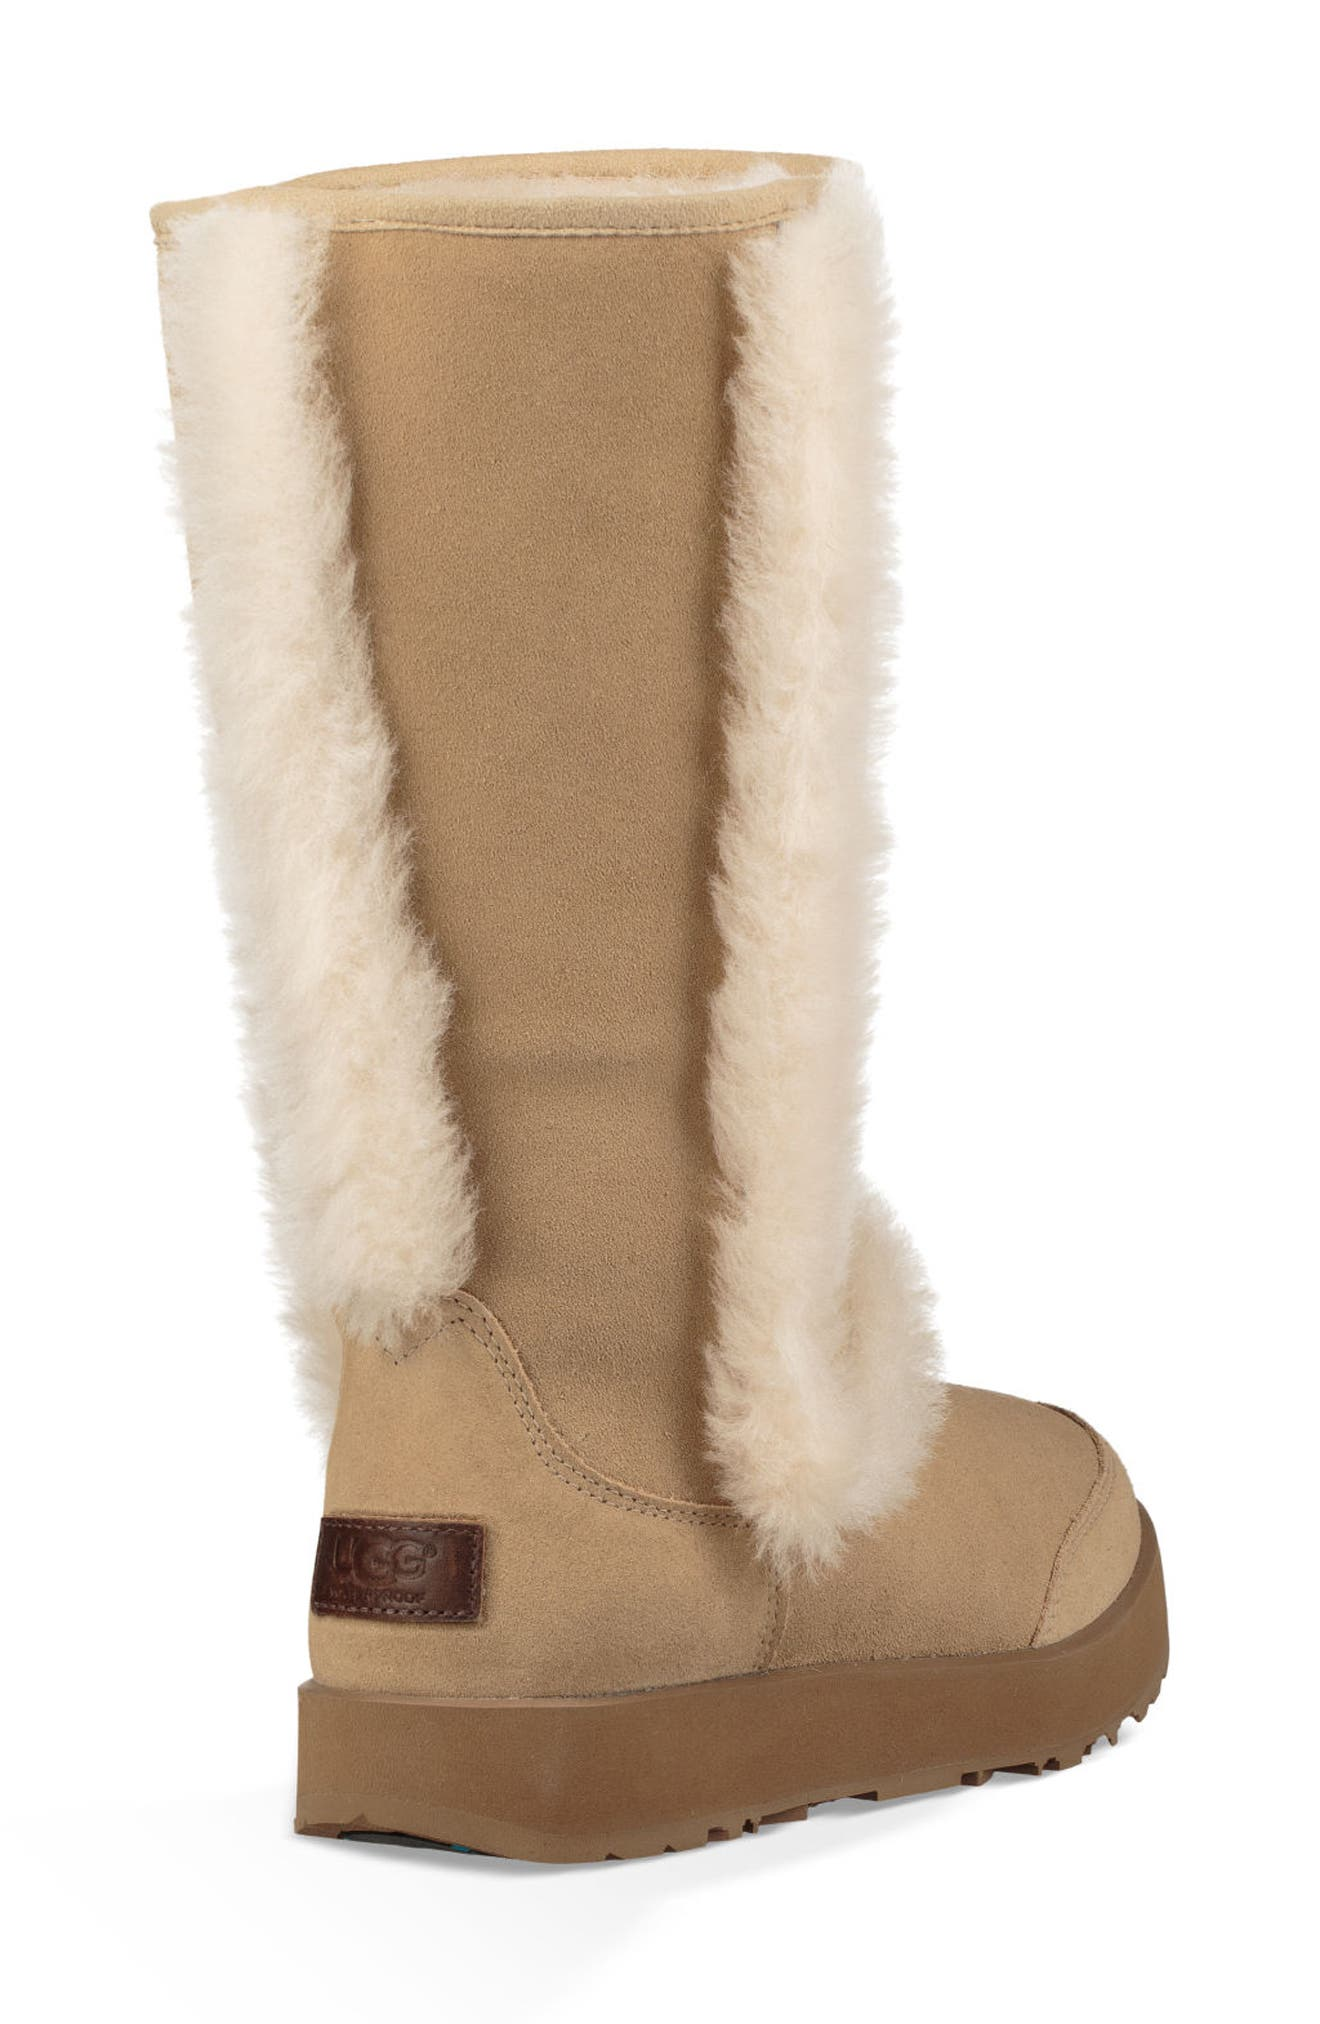 Sundance Genuine Shearling Waterproof Boot,                             Alternate thumbnail 2, color,                             Sand Suede